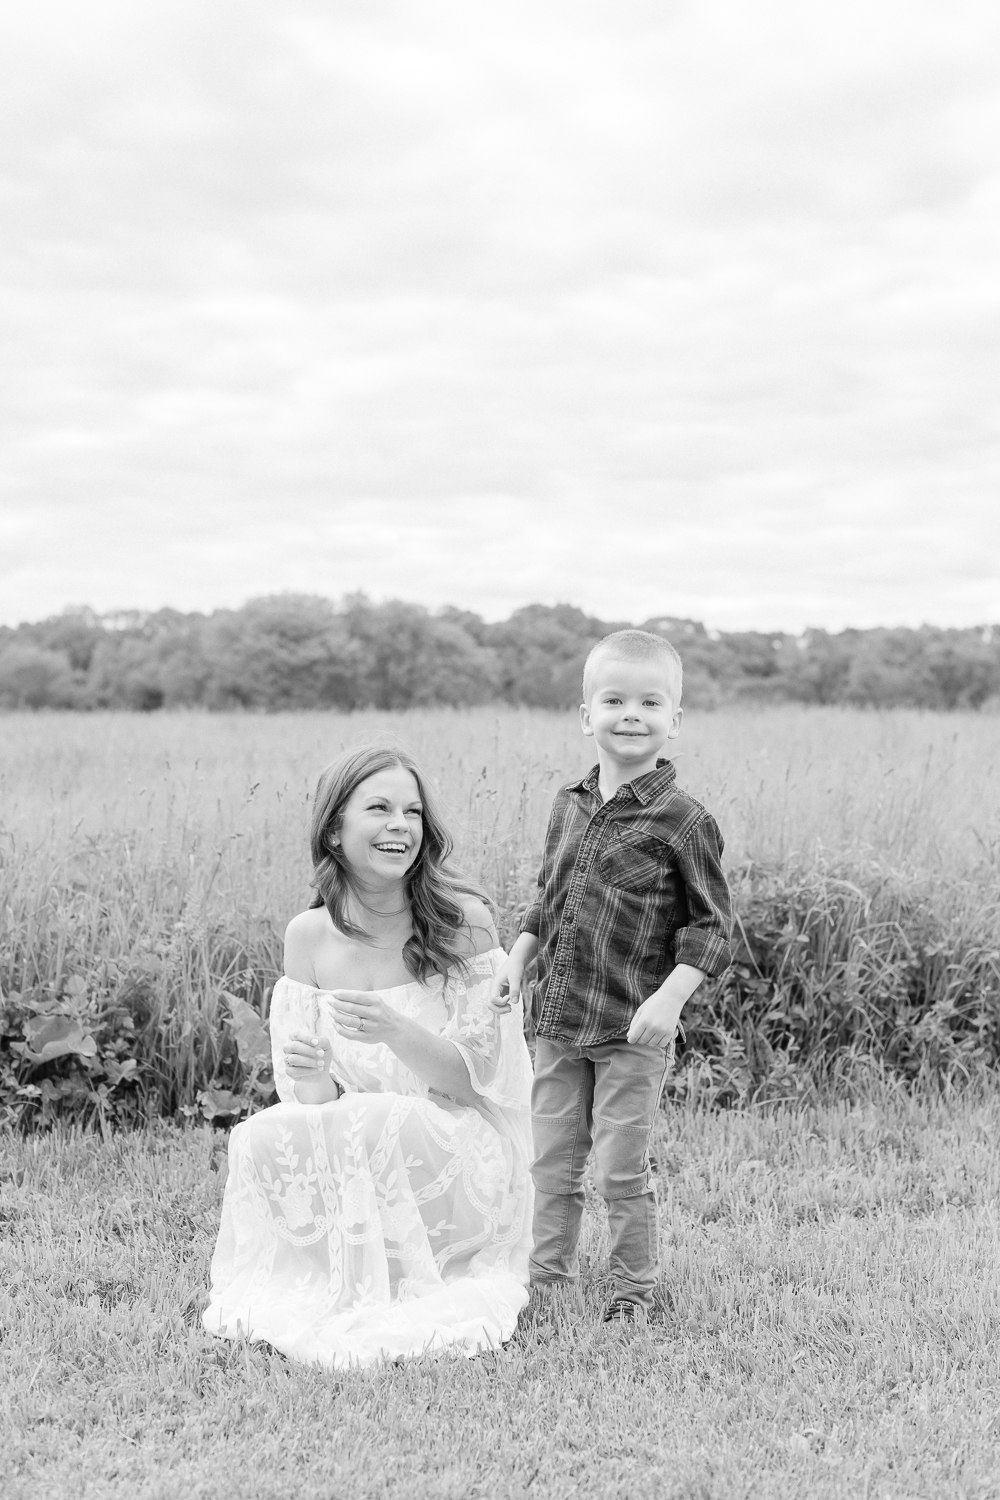 Chicago Naples Lifestyle Family Photographer – St James Farm Family Photos-19